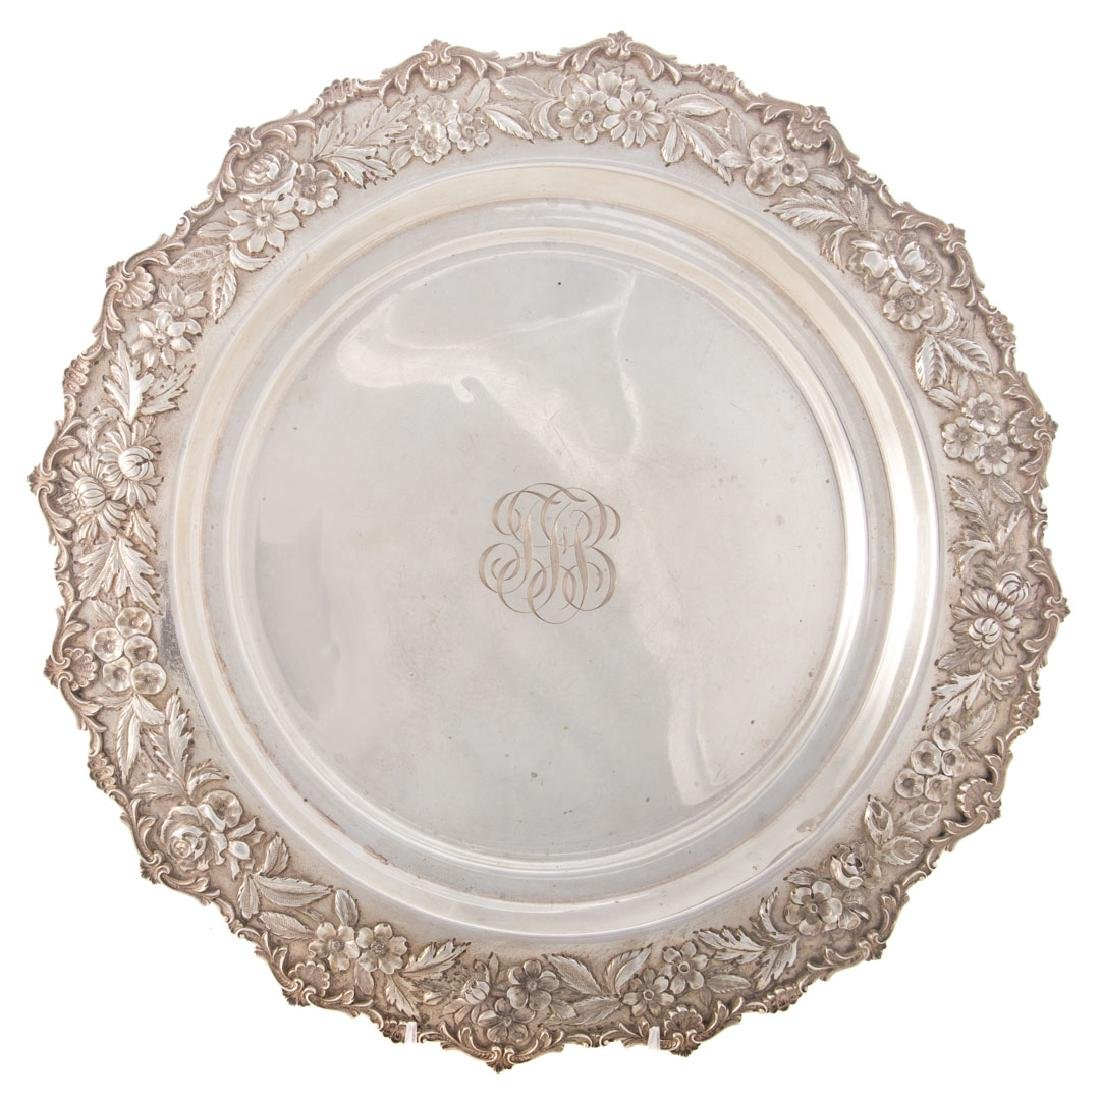 Kirk repousse sterling silver tray